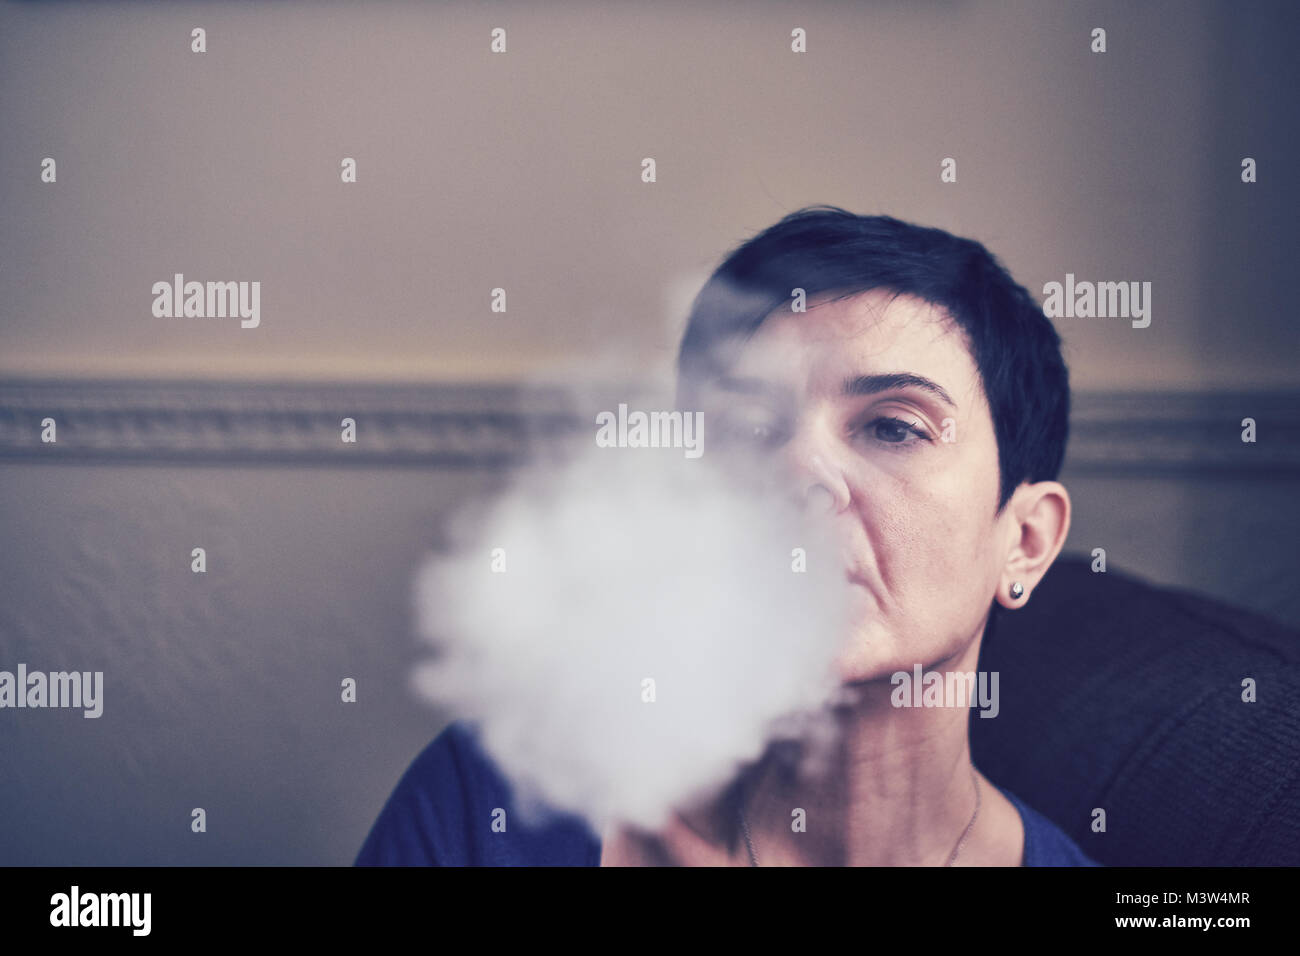 Female with e-cigarette, vaping and re-filling - Stock Image